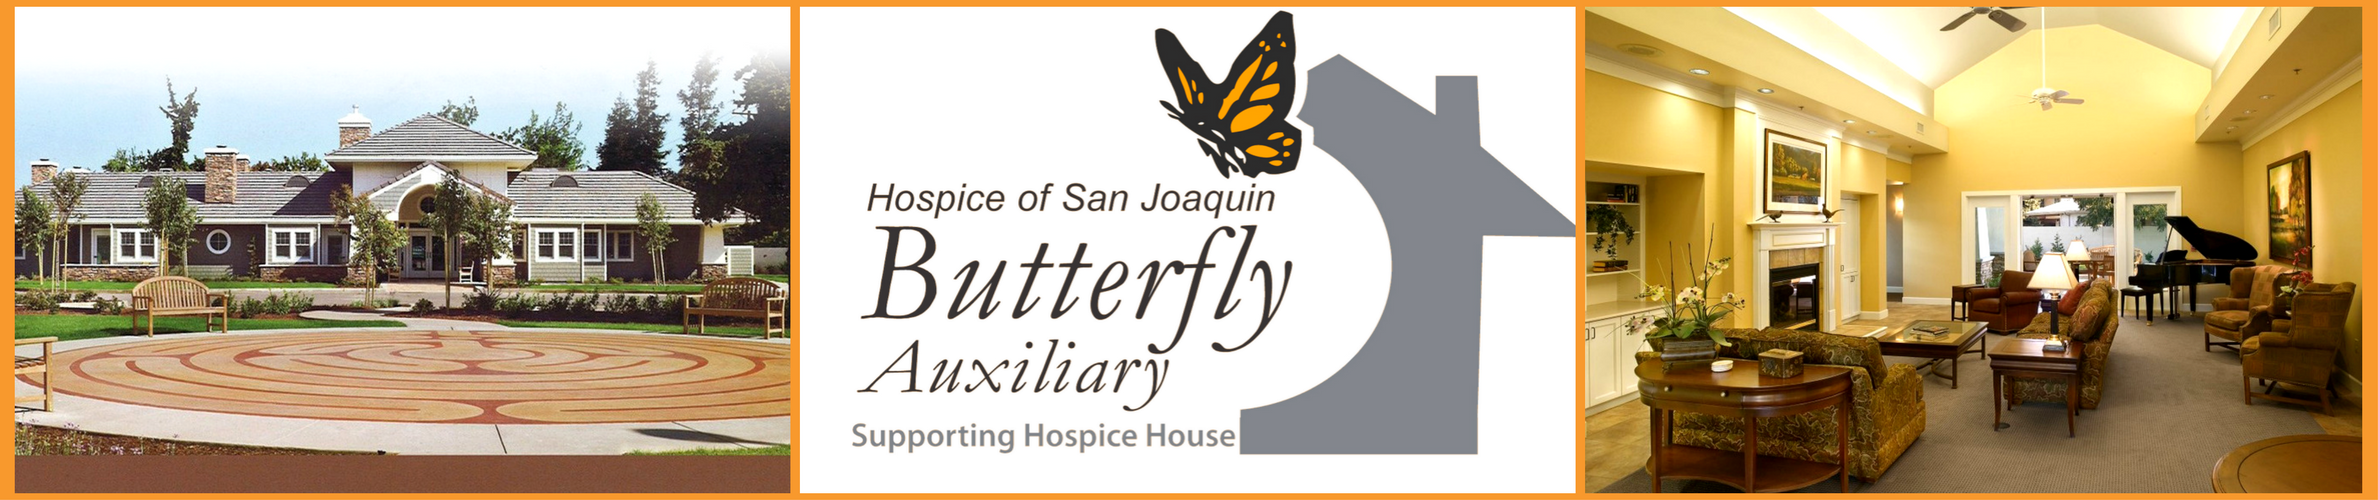 Butterfly Auxiliary Banner